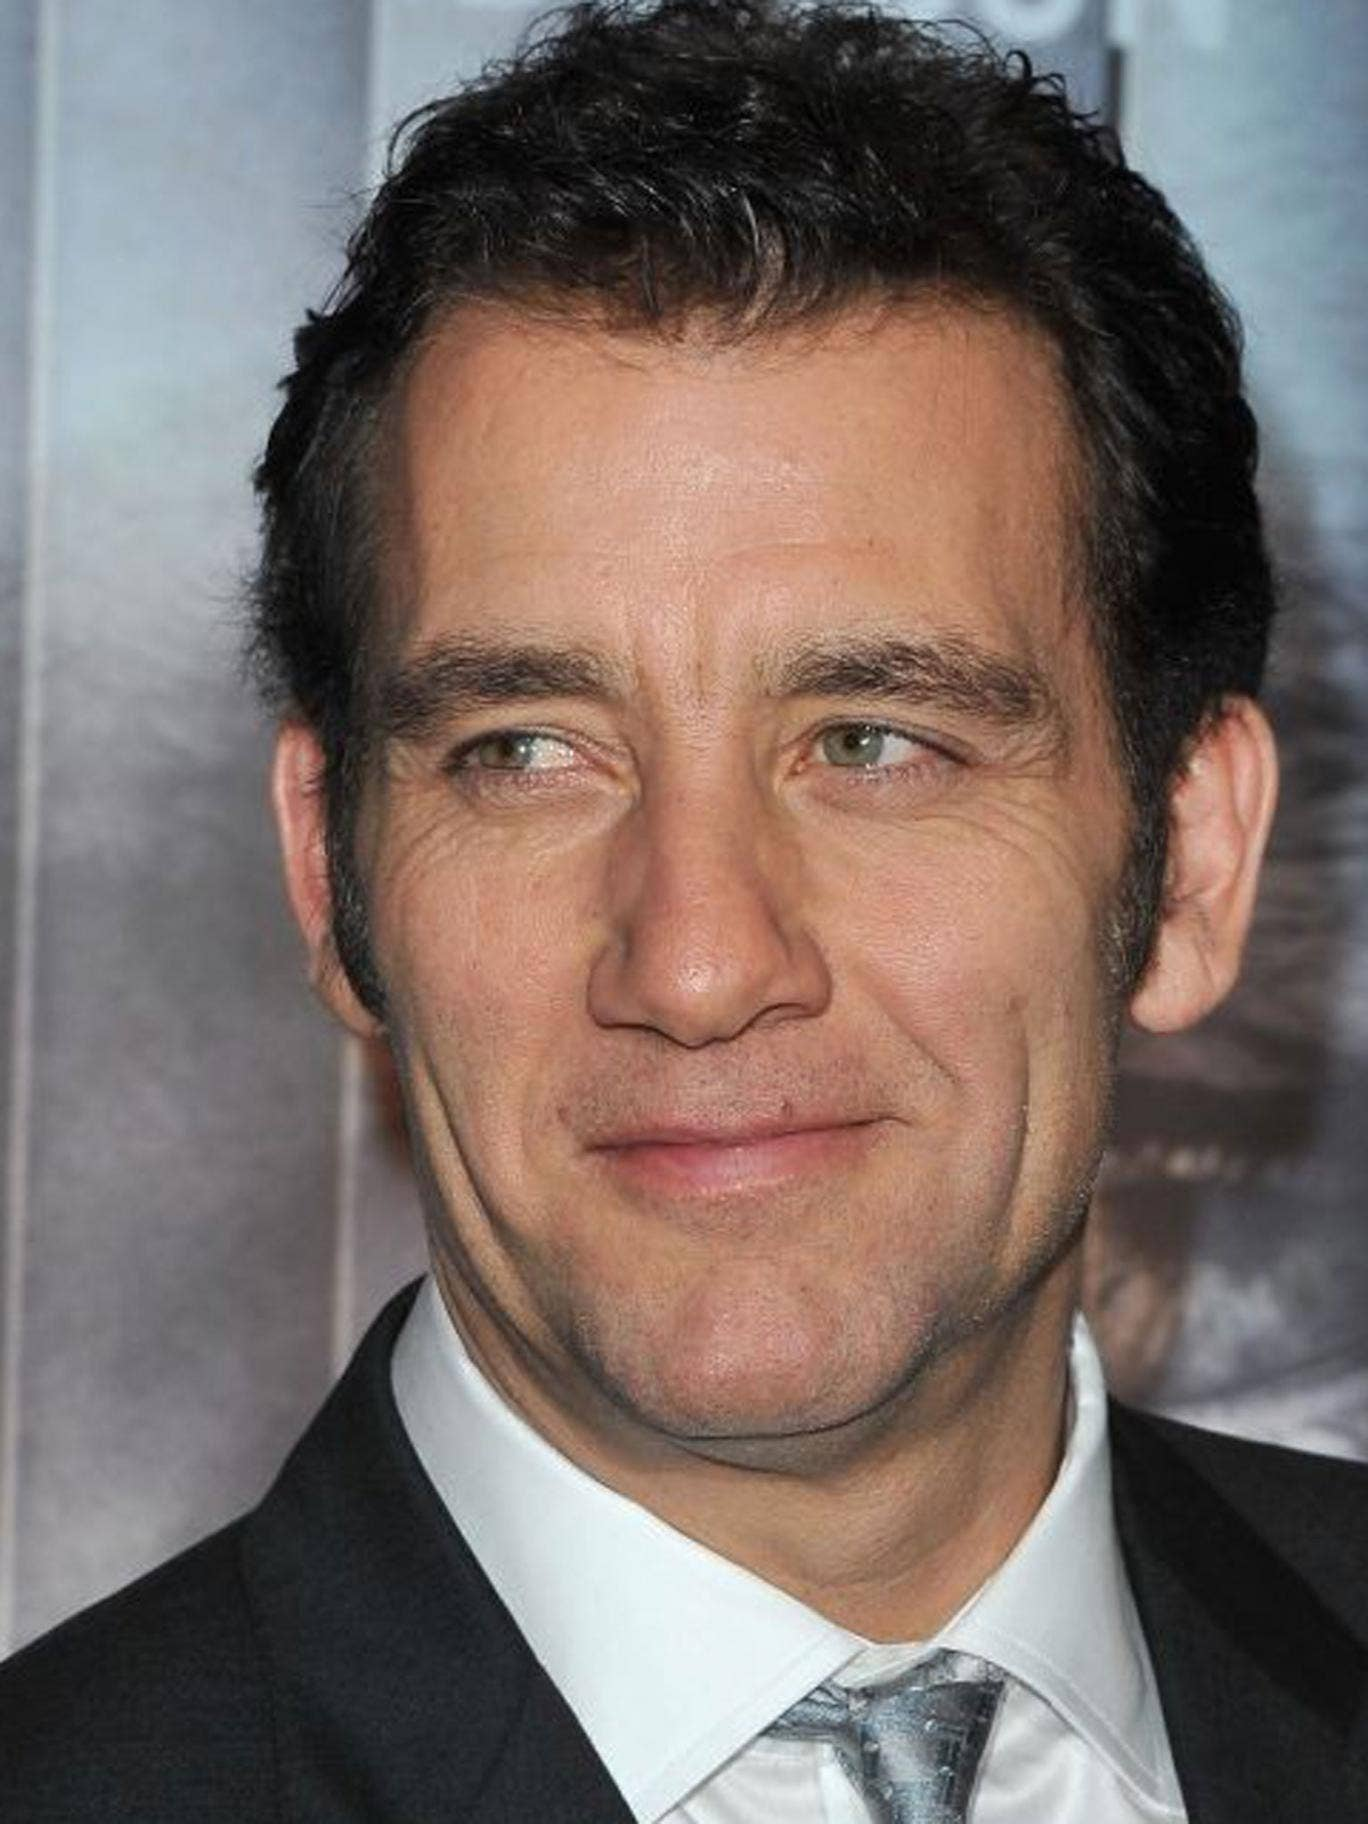 Clive Owen (pictured) and Jacki Weaver are starring in a film about a philanderer who is blackmailed by a teenager